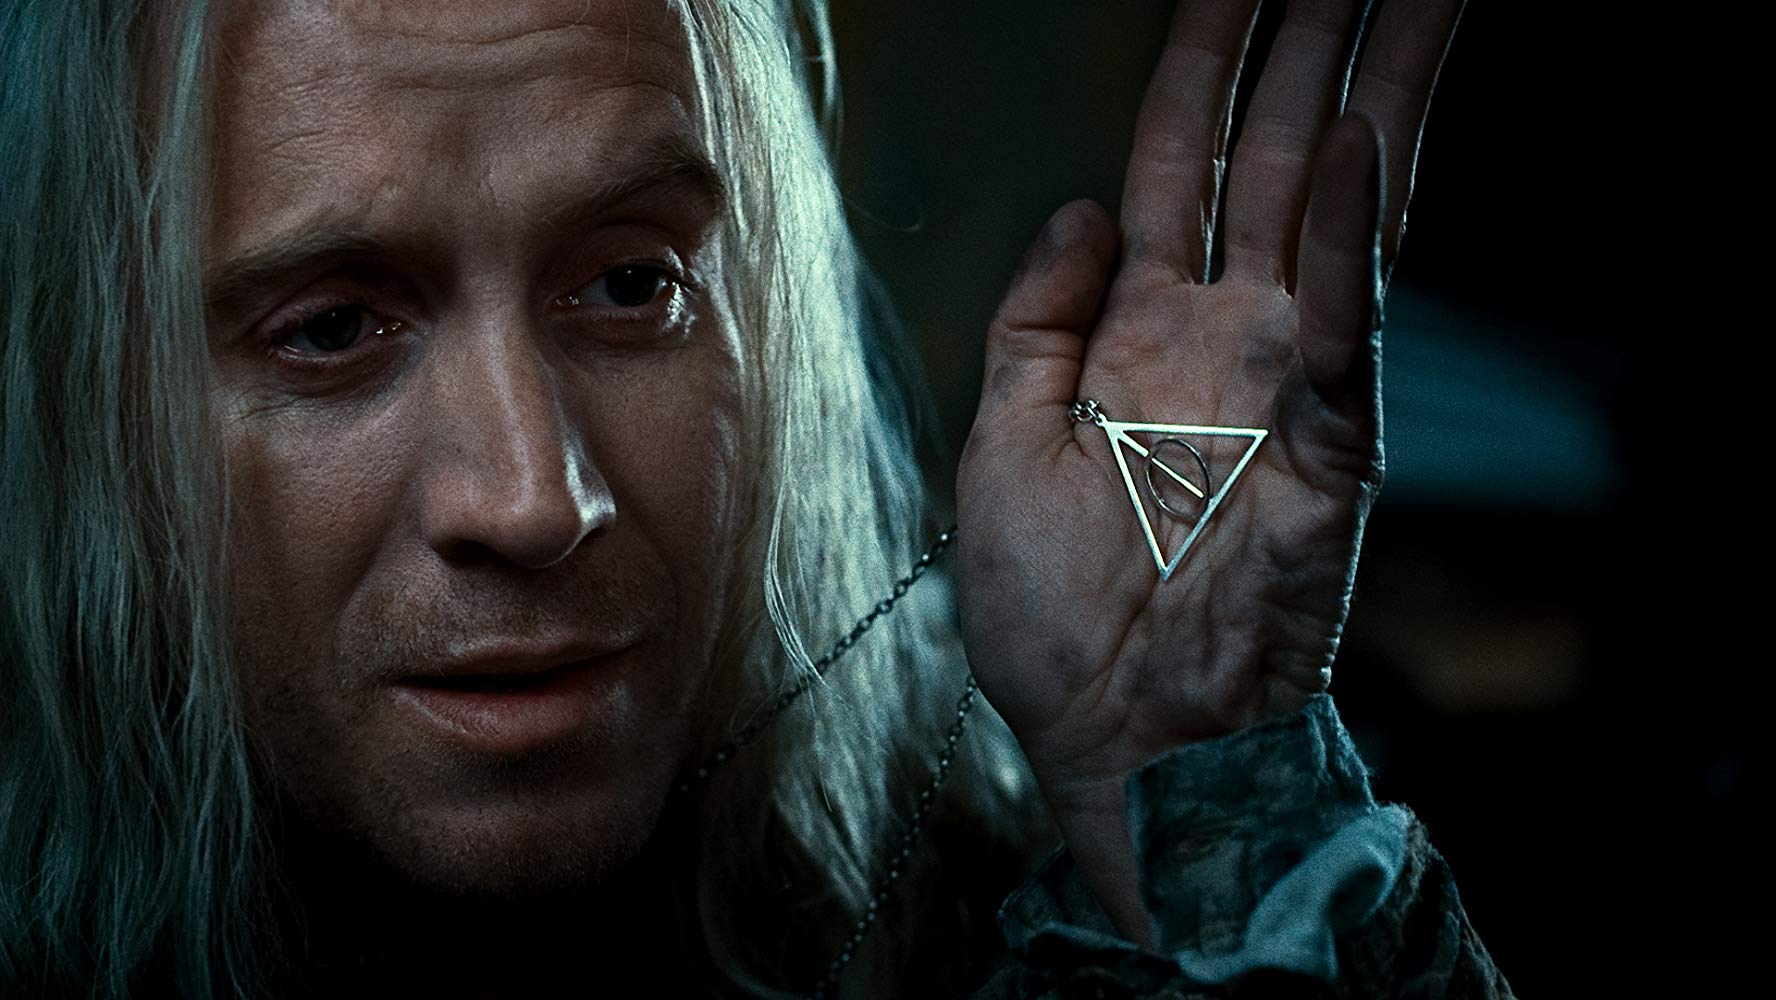 The symbol of The Deathly Hallows